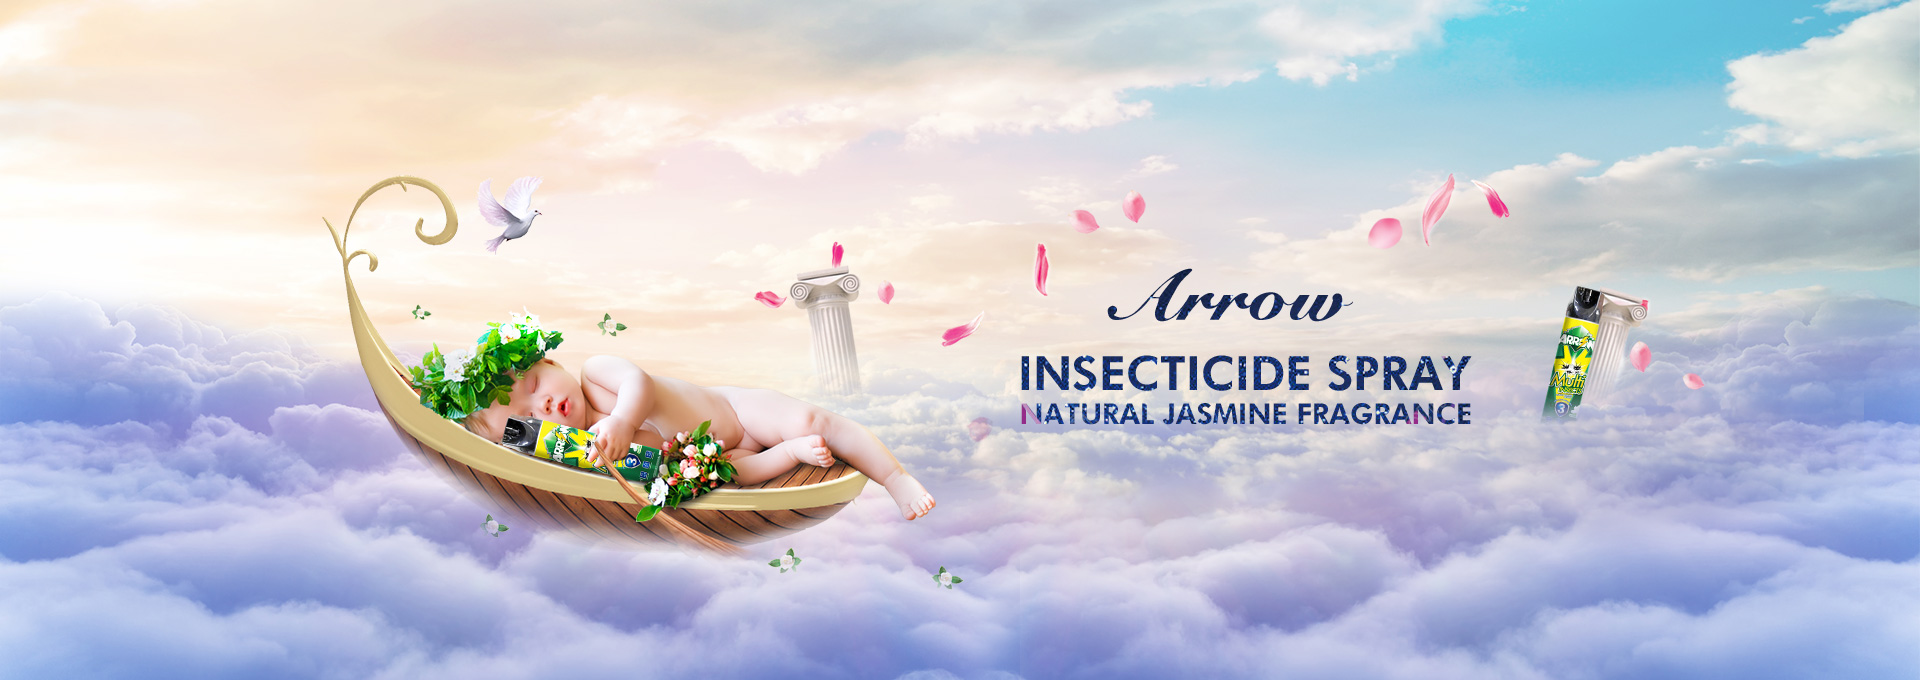 insecticide spray natural jasmine fragrance 600ml ARROW